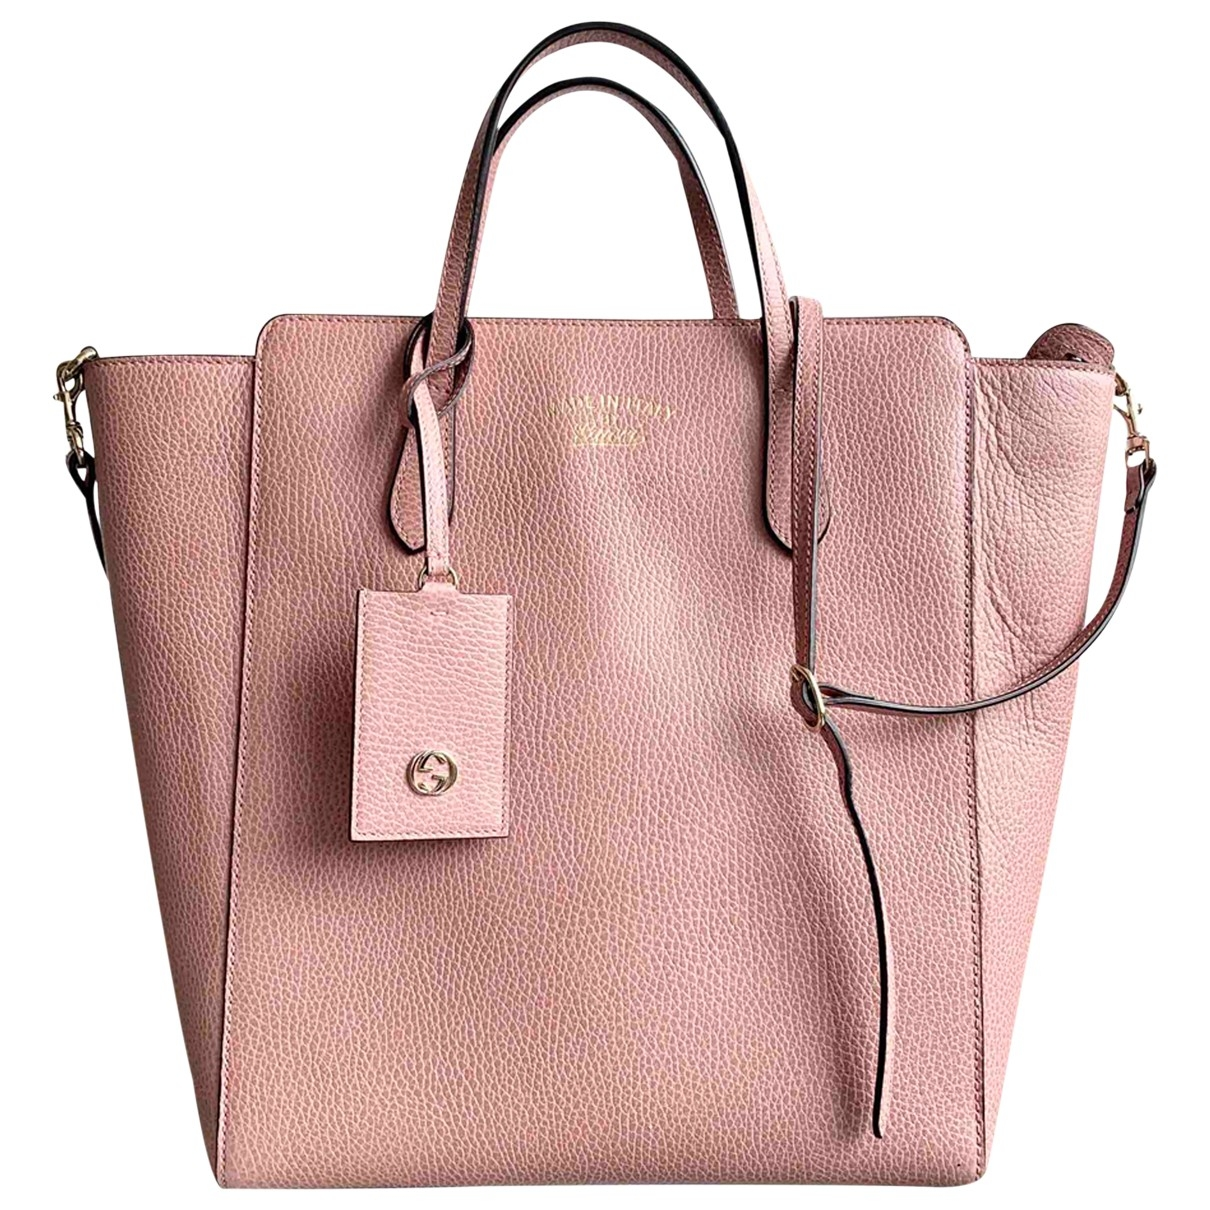 Gucci \N Pink Leather handbag for Women \N